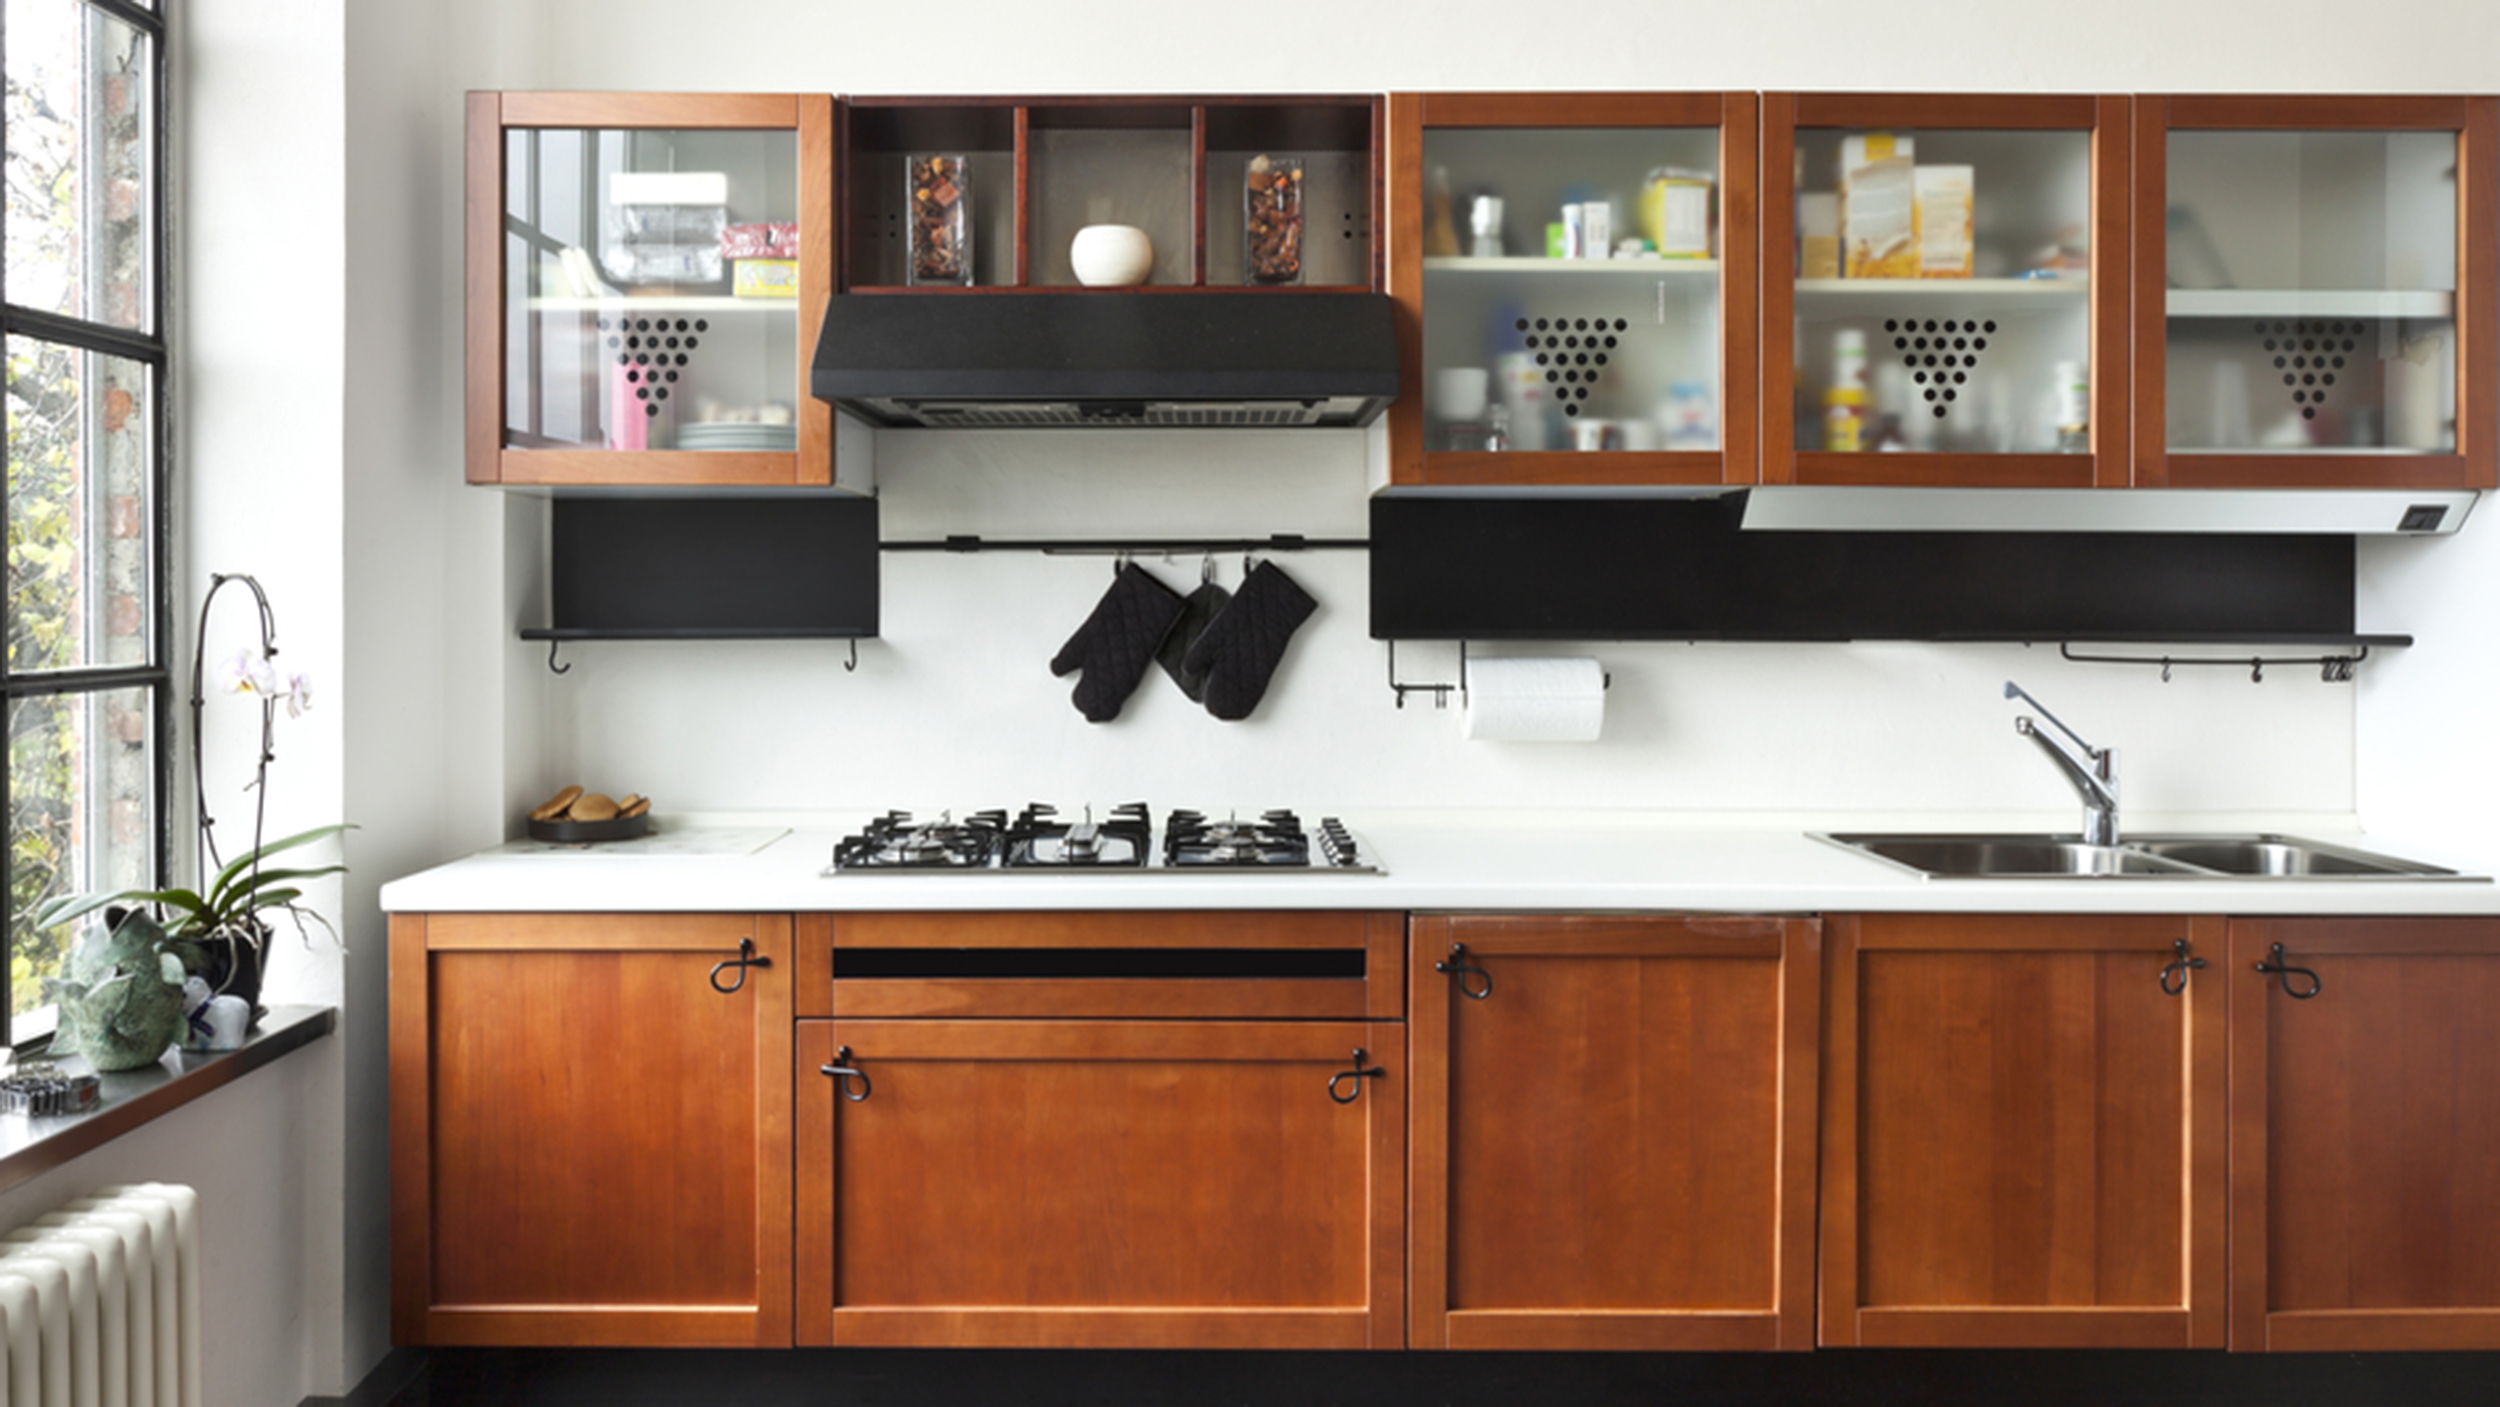 How to improve your rental kitchen - TODAY.com